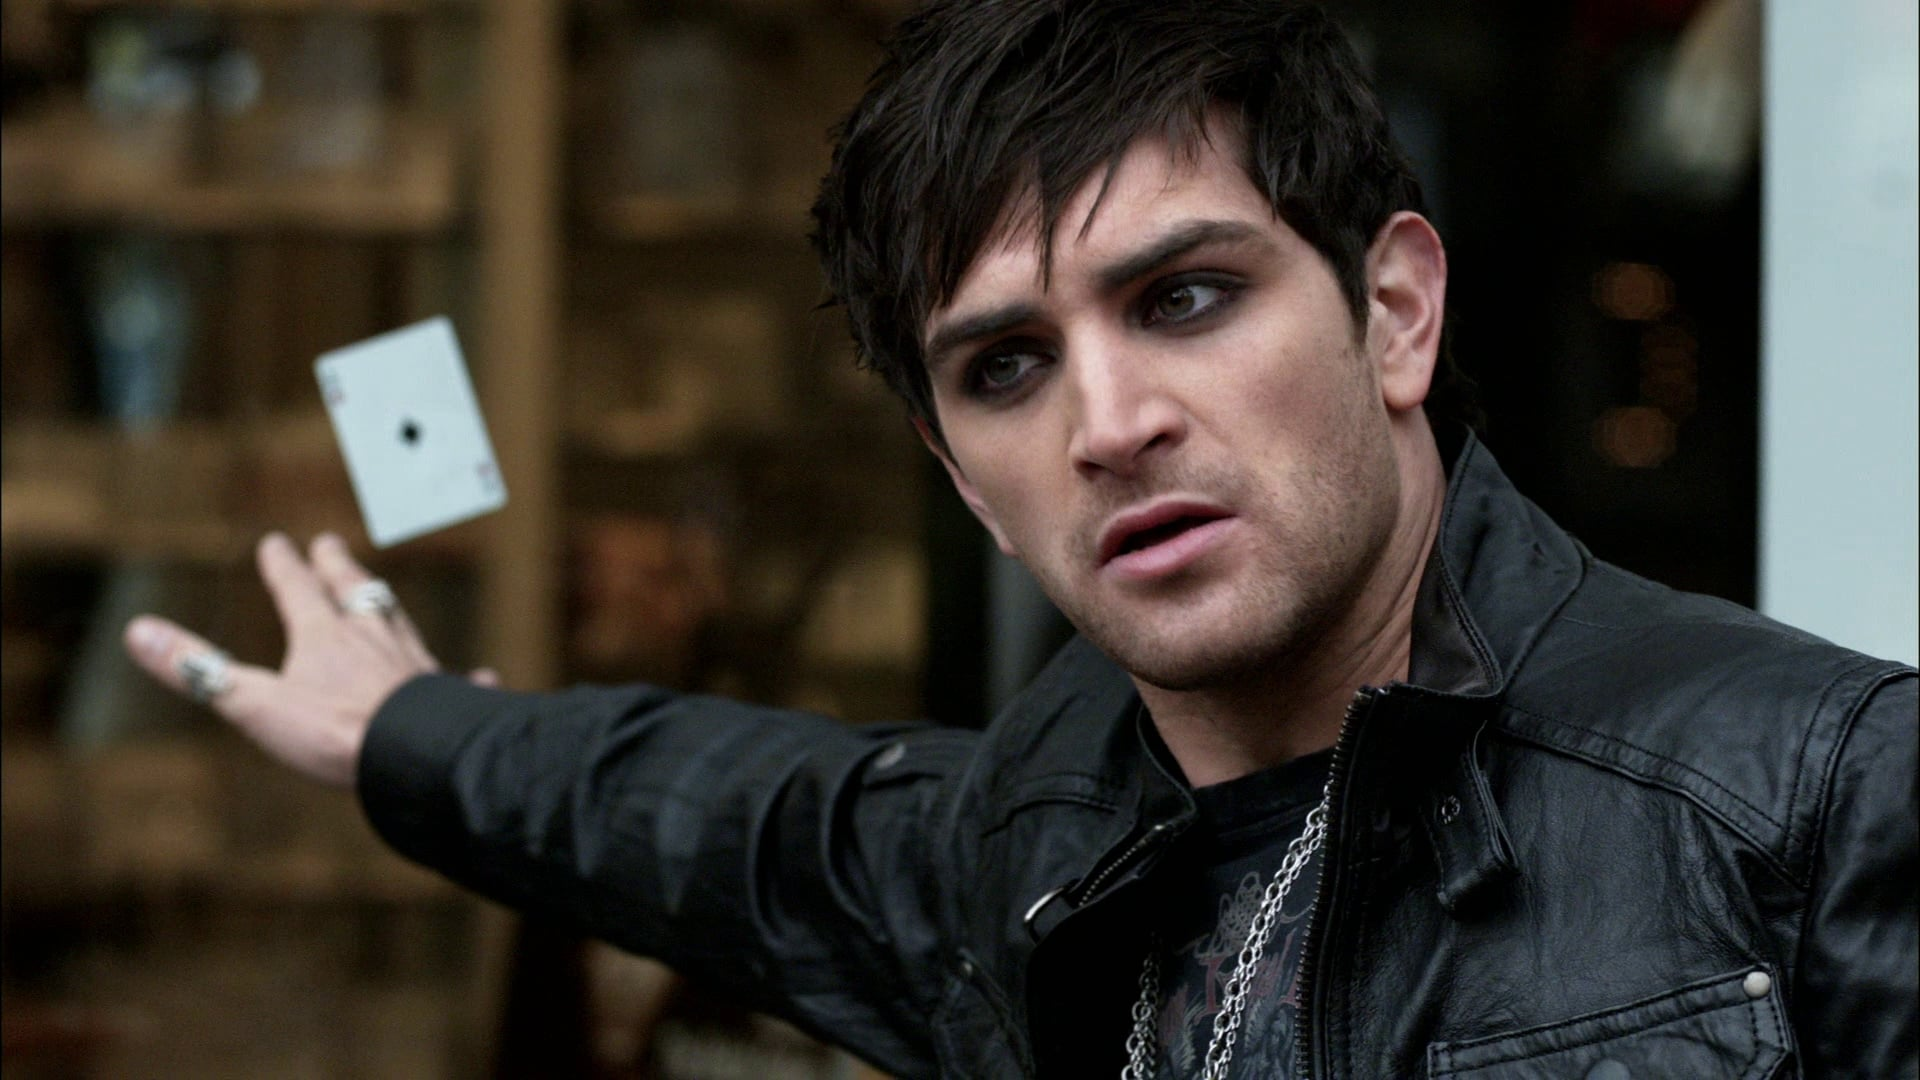 Supernatural - Season 4 Episode 12 : Criss Angel Is A Douchebag